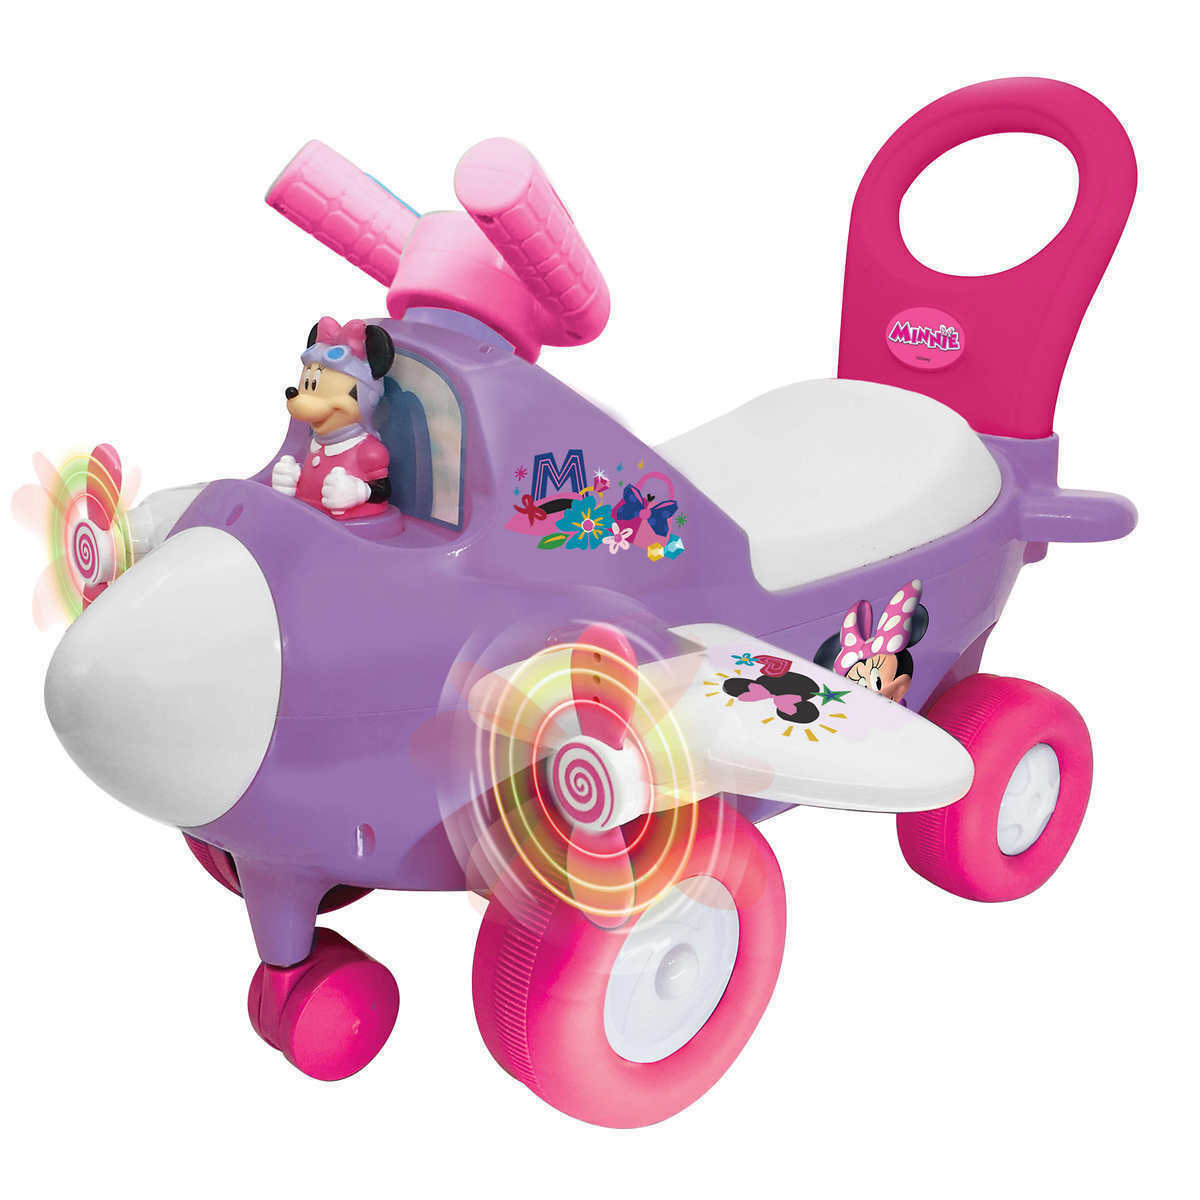 Disney Junior Minnie Mouse Lights N Sounds Activity Plane Ride On Toy